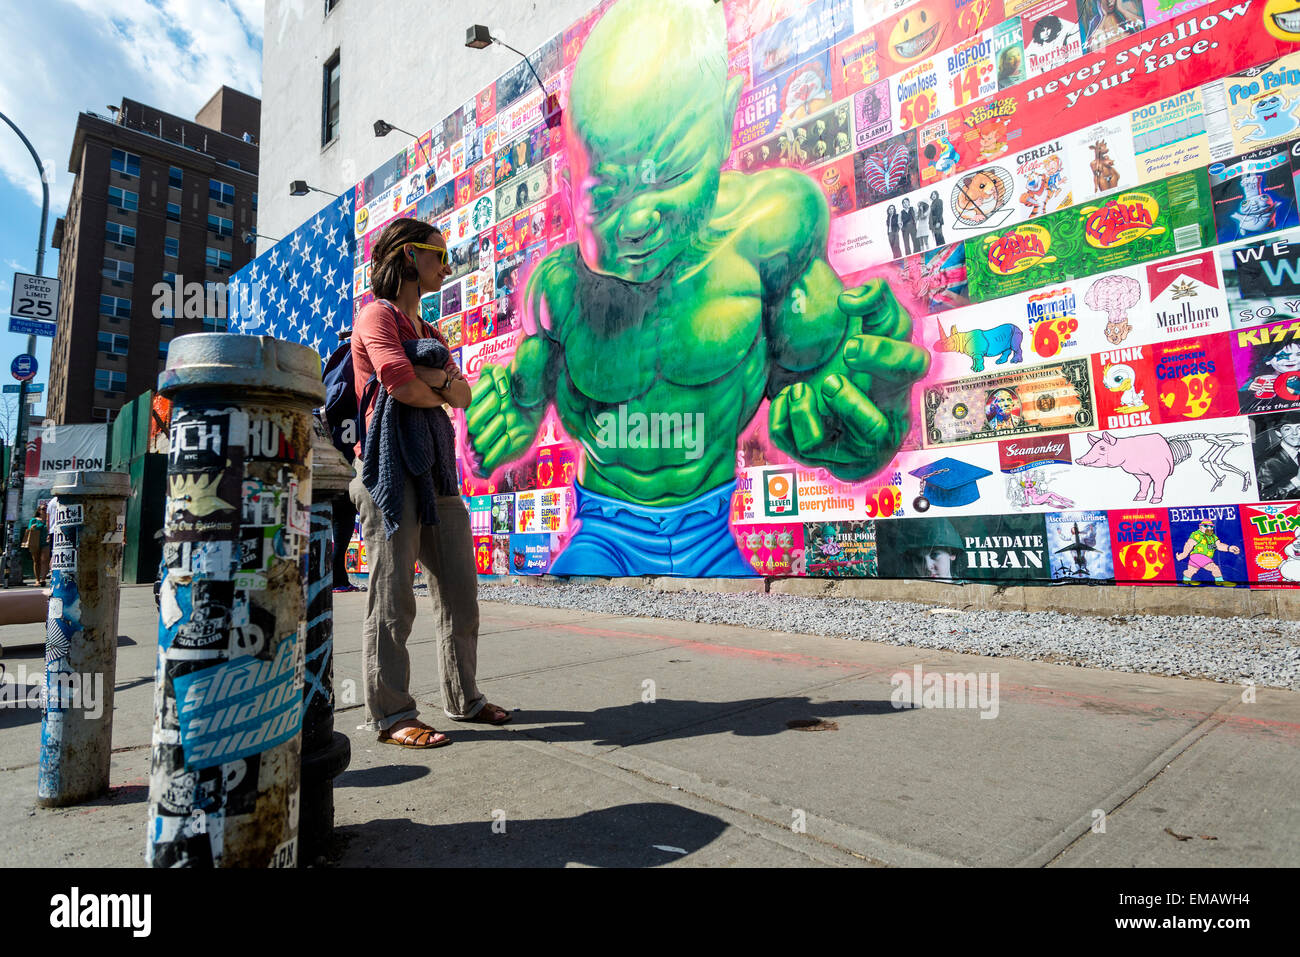 New york usa 18 april 2016 bowery mural featuring for Bowery mural nyc